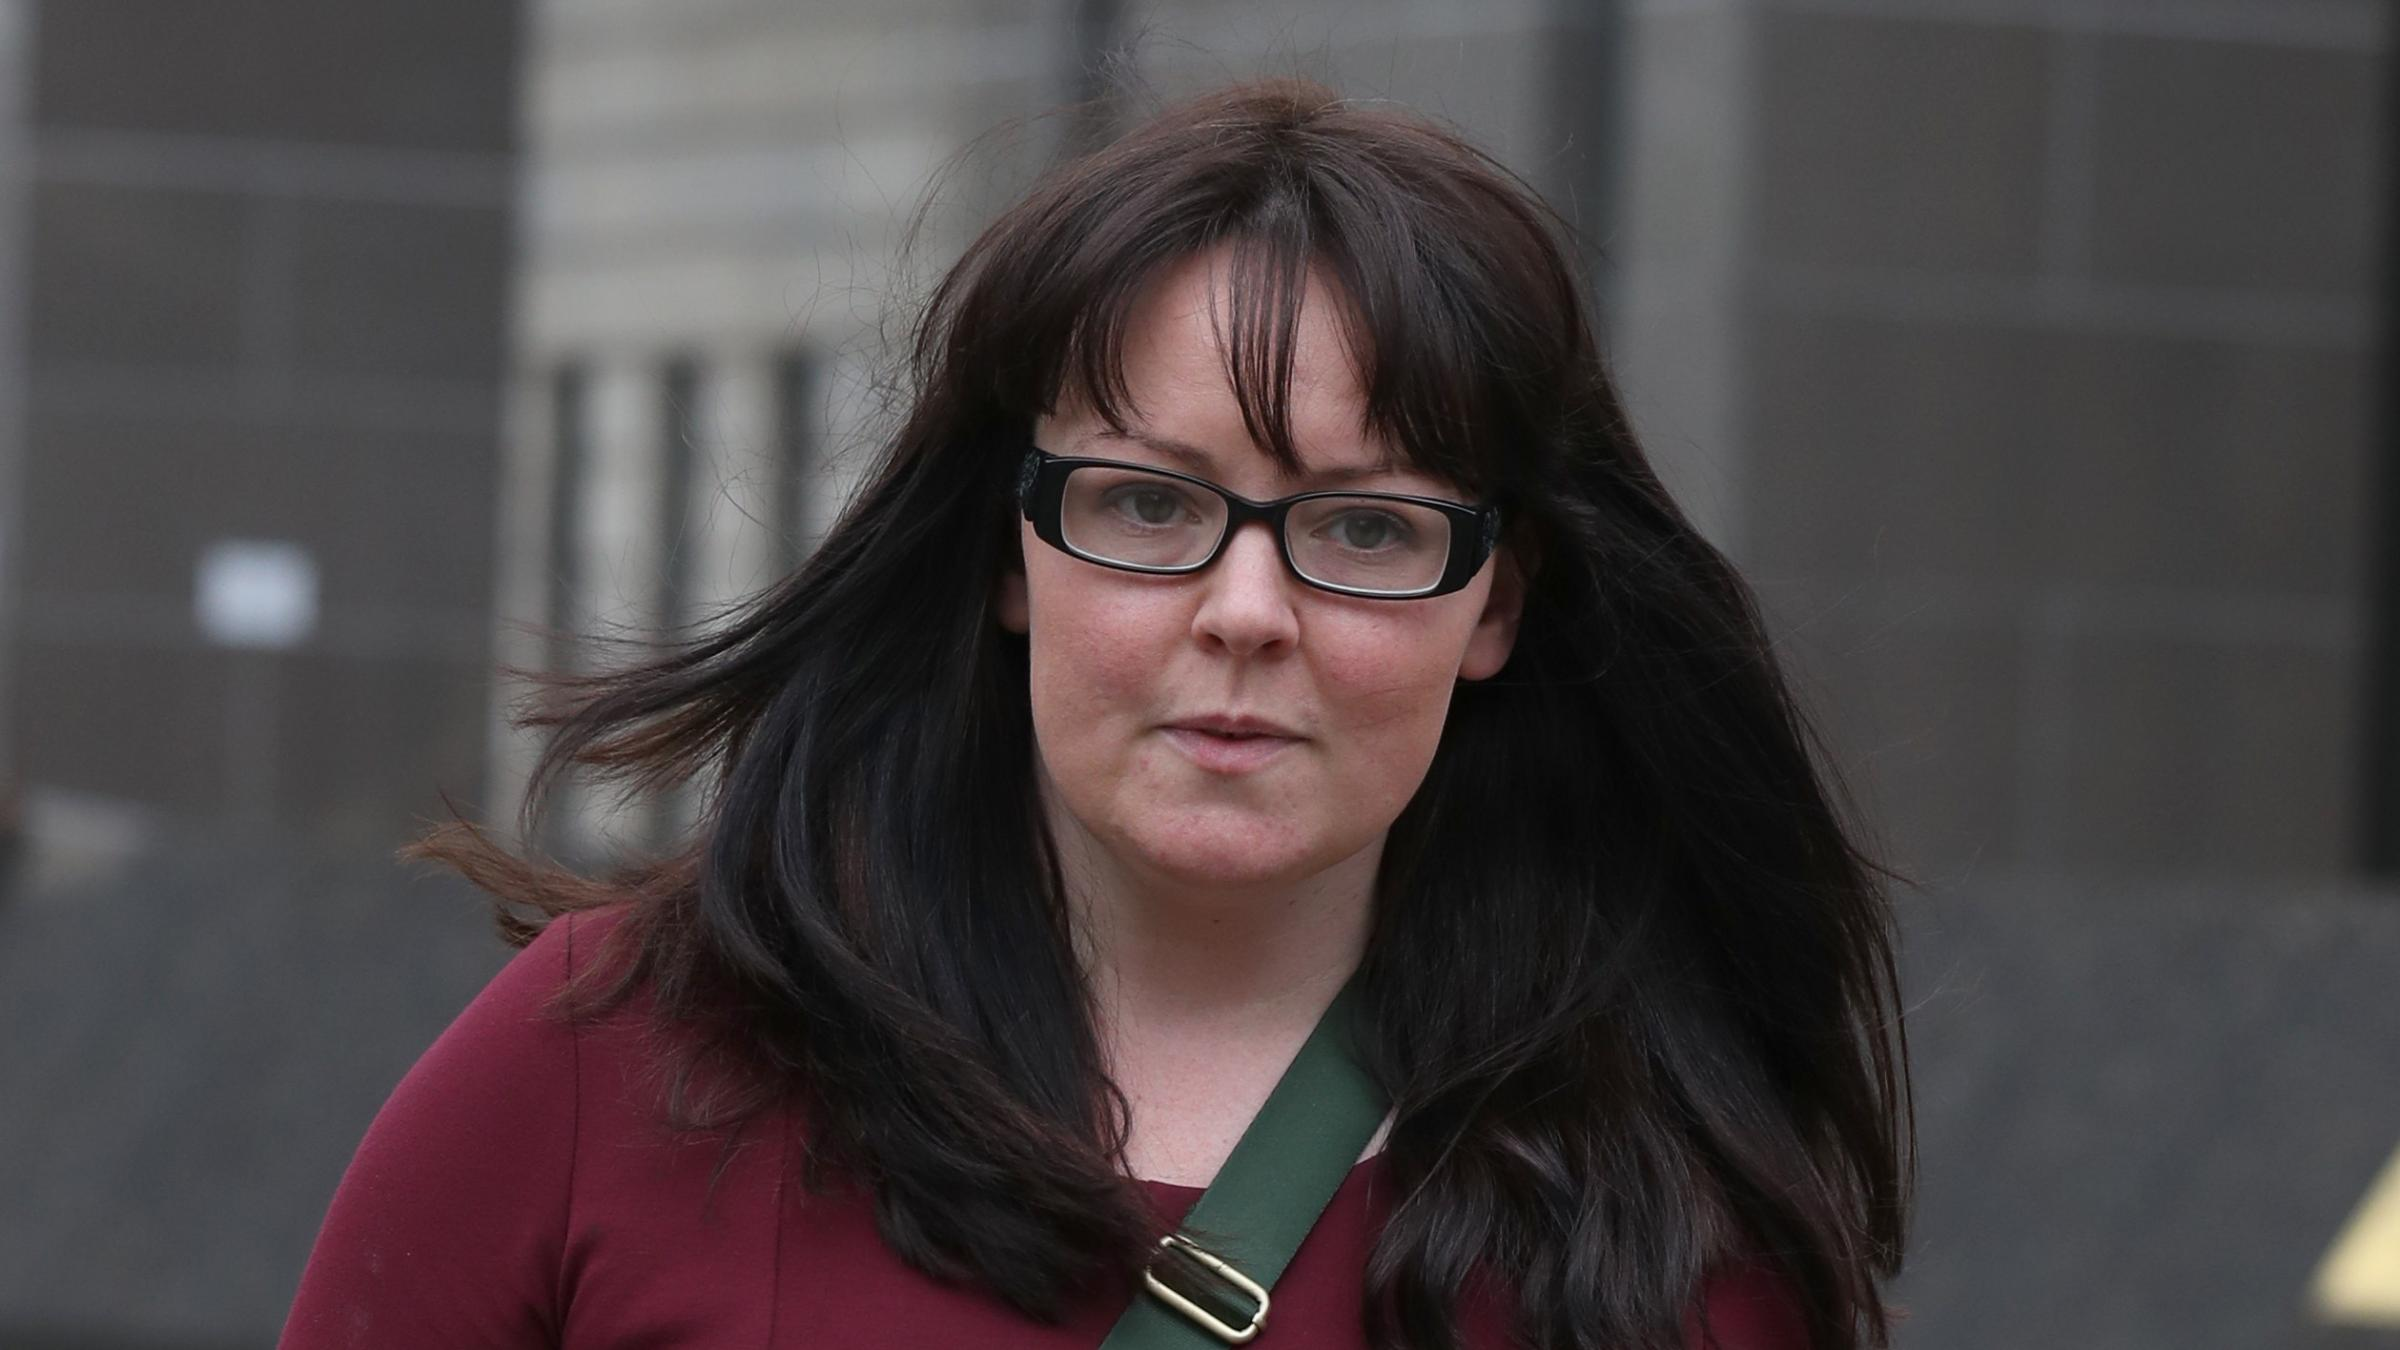 Former SNP MP due back in court over £25,600 embezzlement